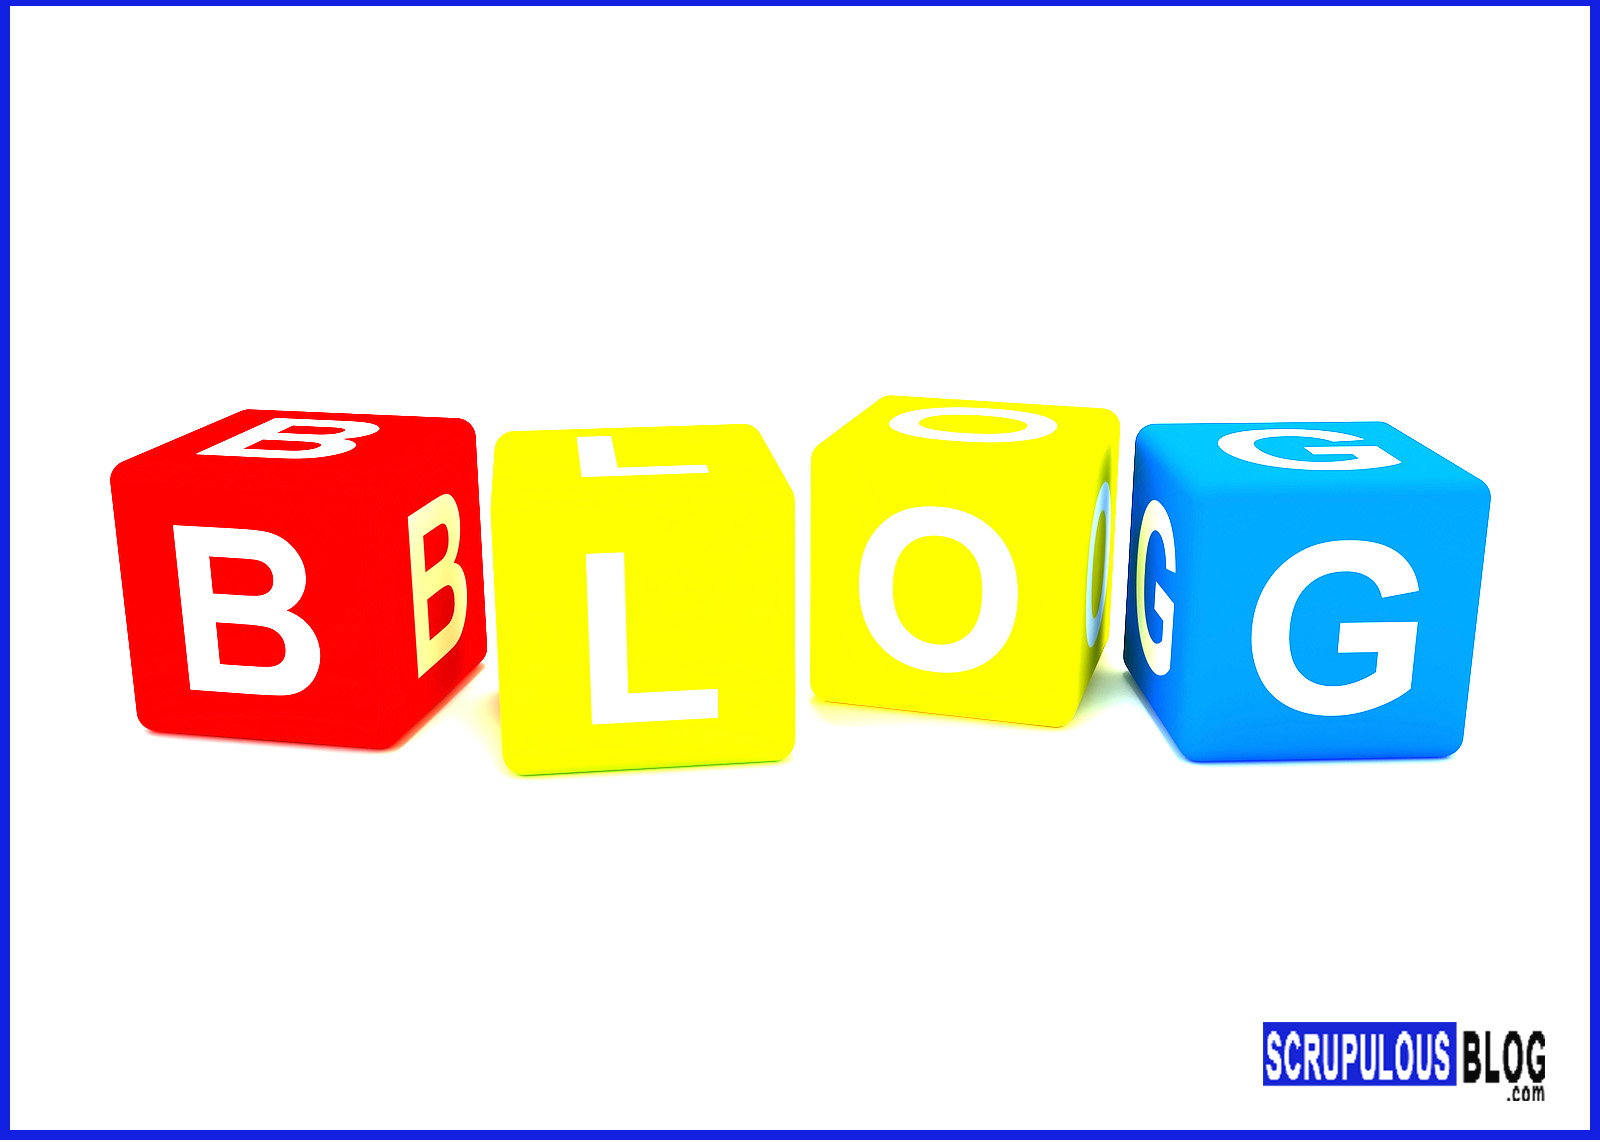 HOW TO HAVE A BLOG OF YOUR OWN